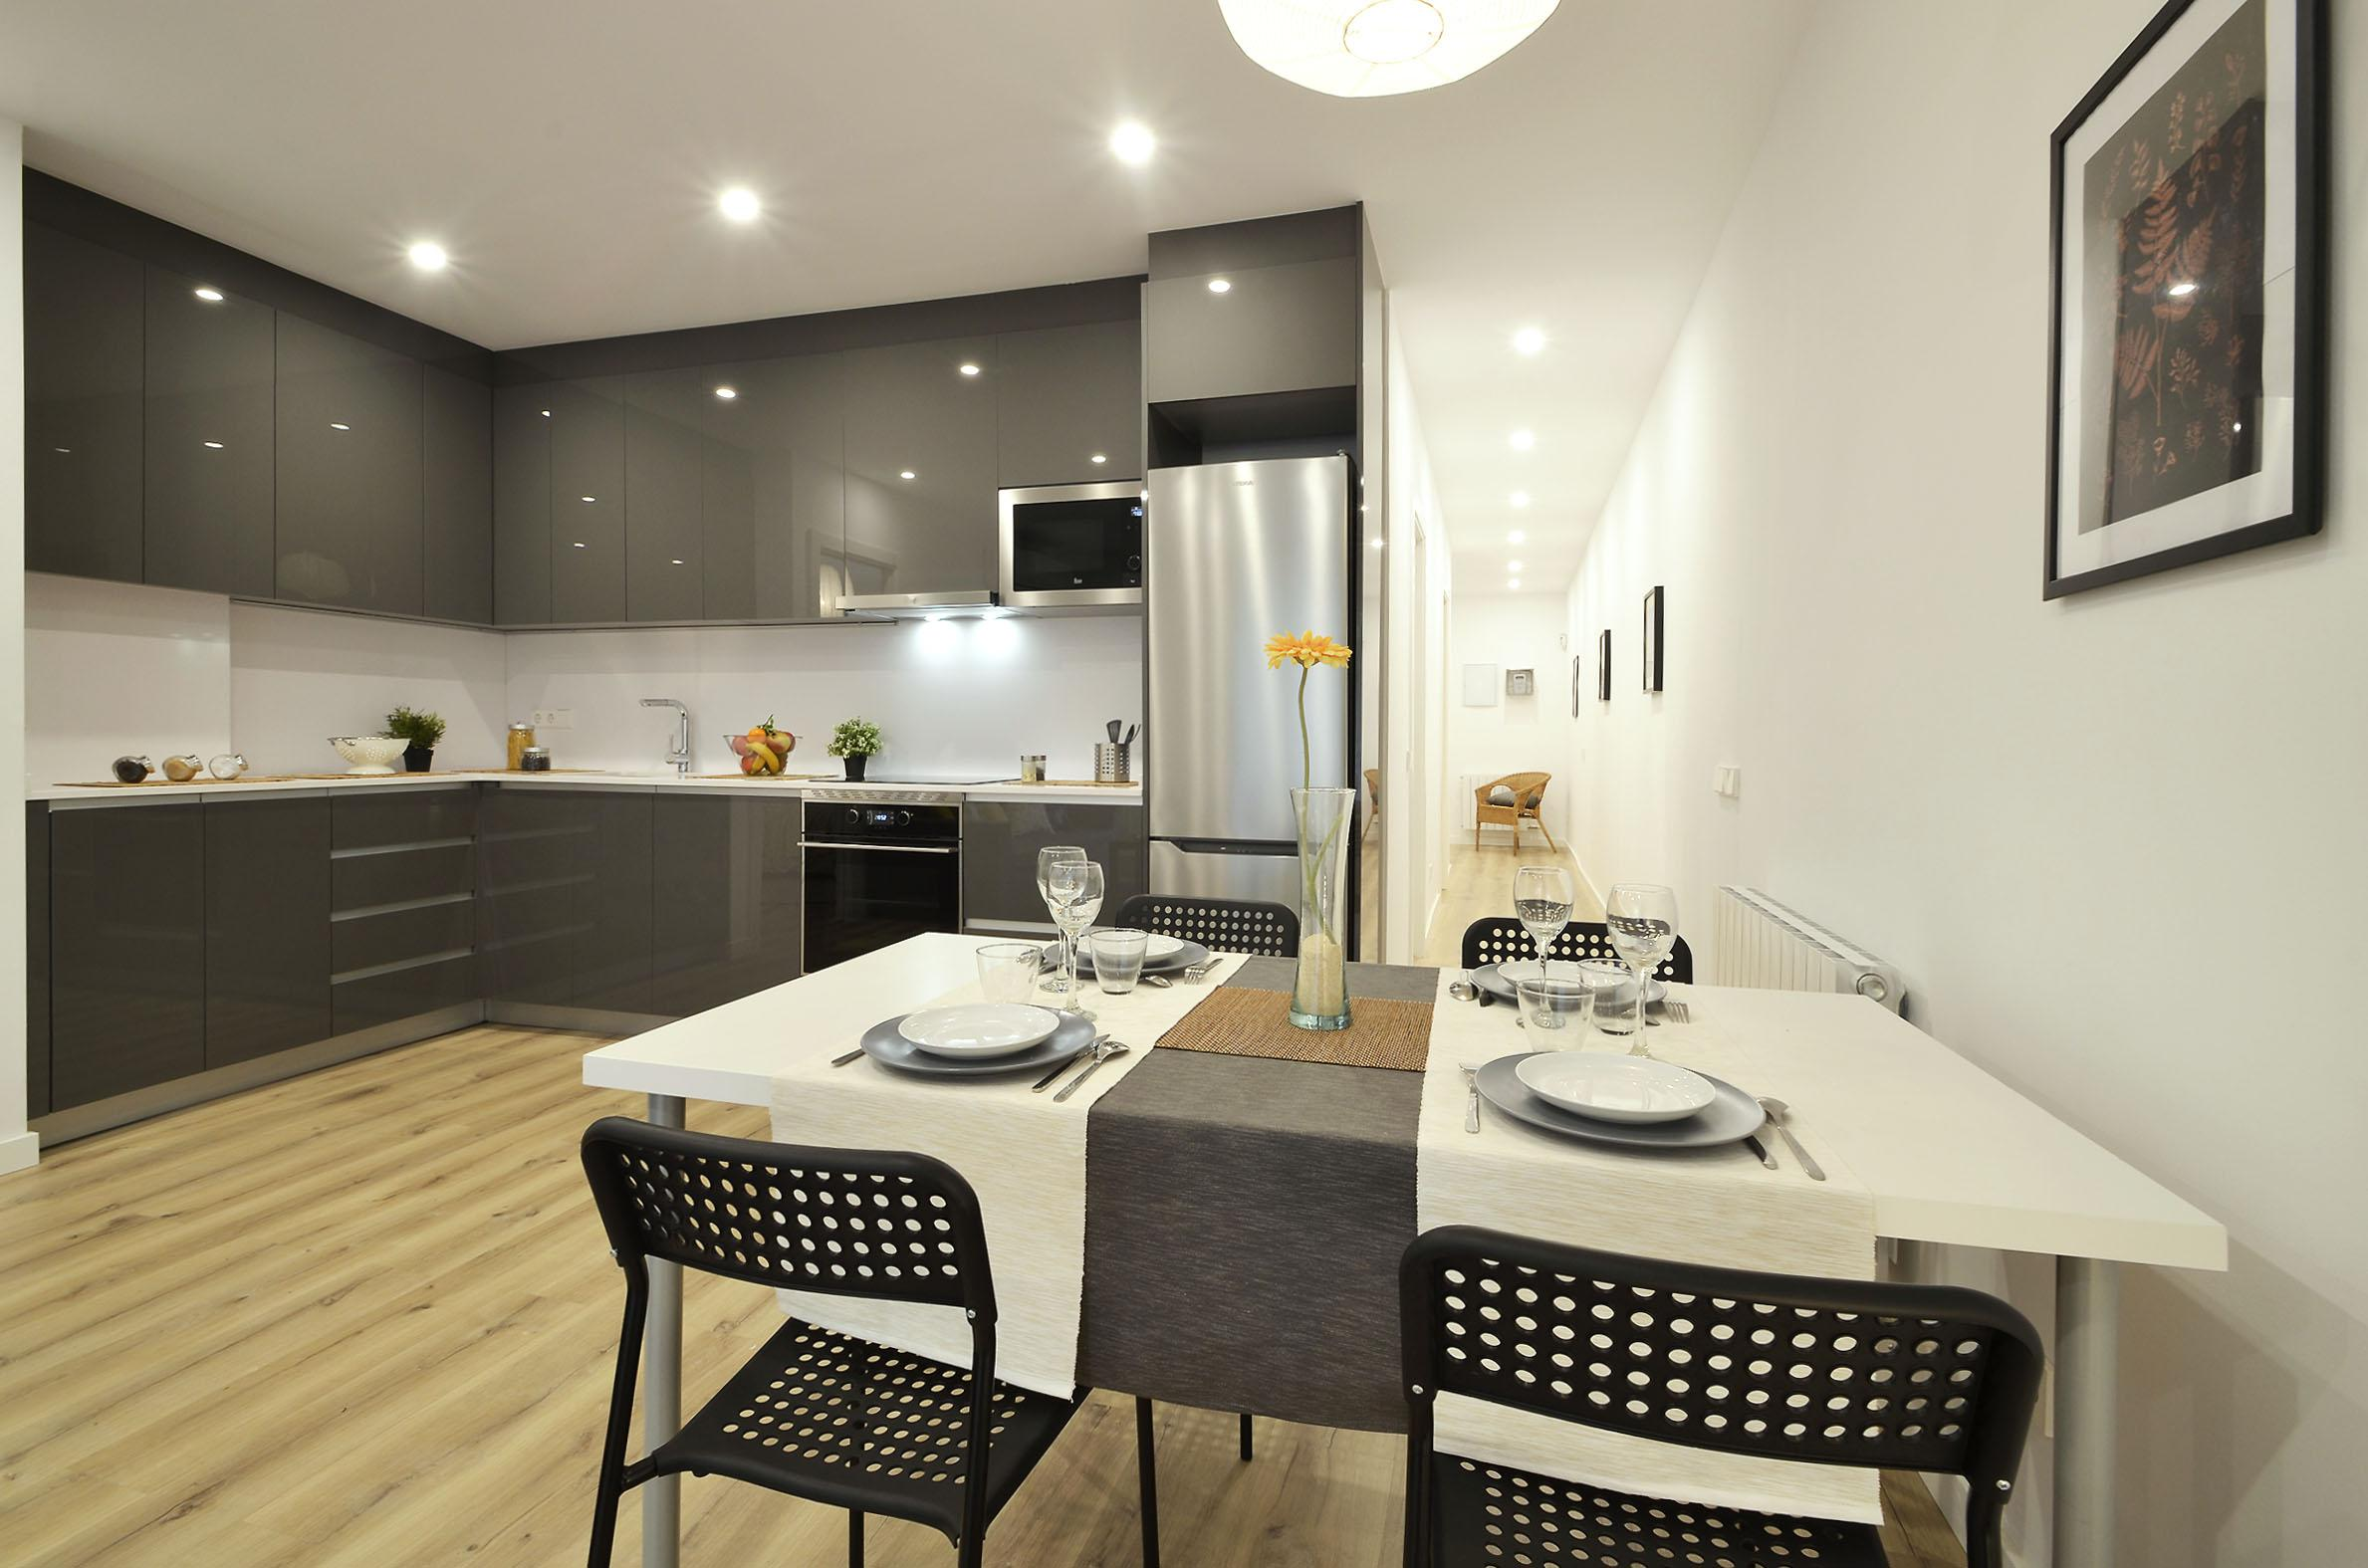 245687 Flat for sale in Eixample, Fort Pienc 5